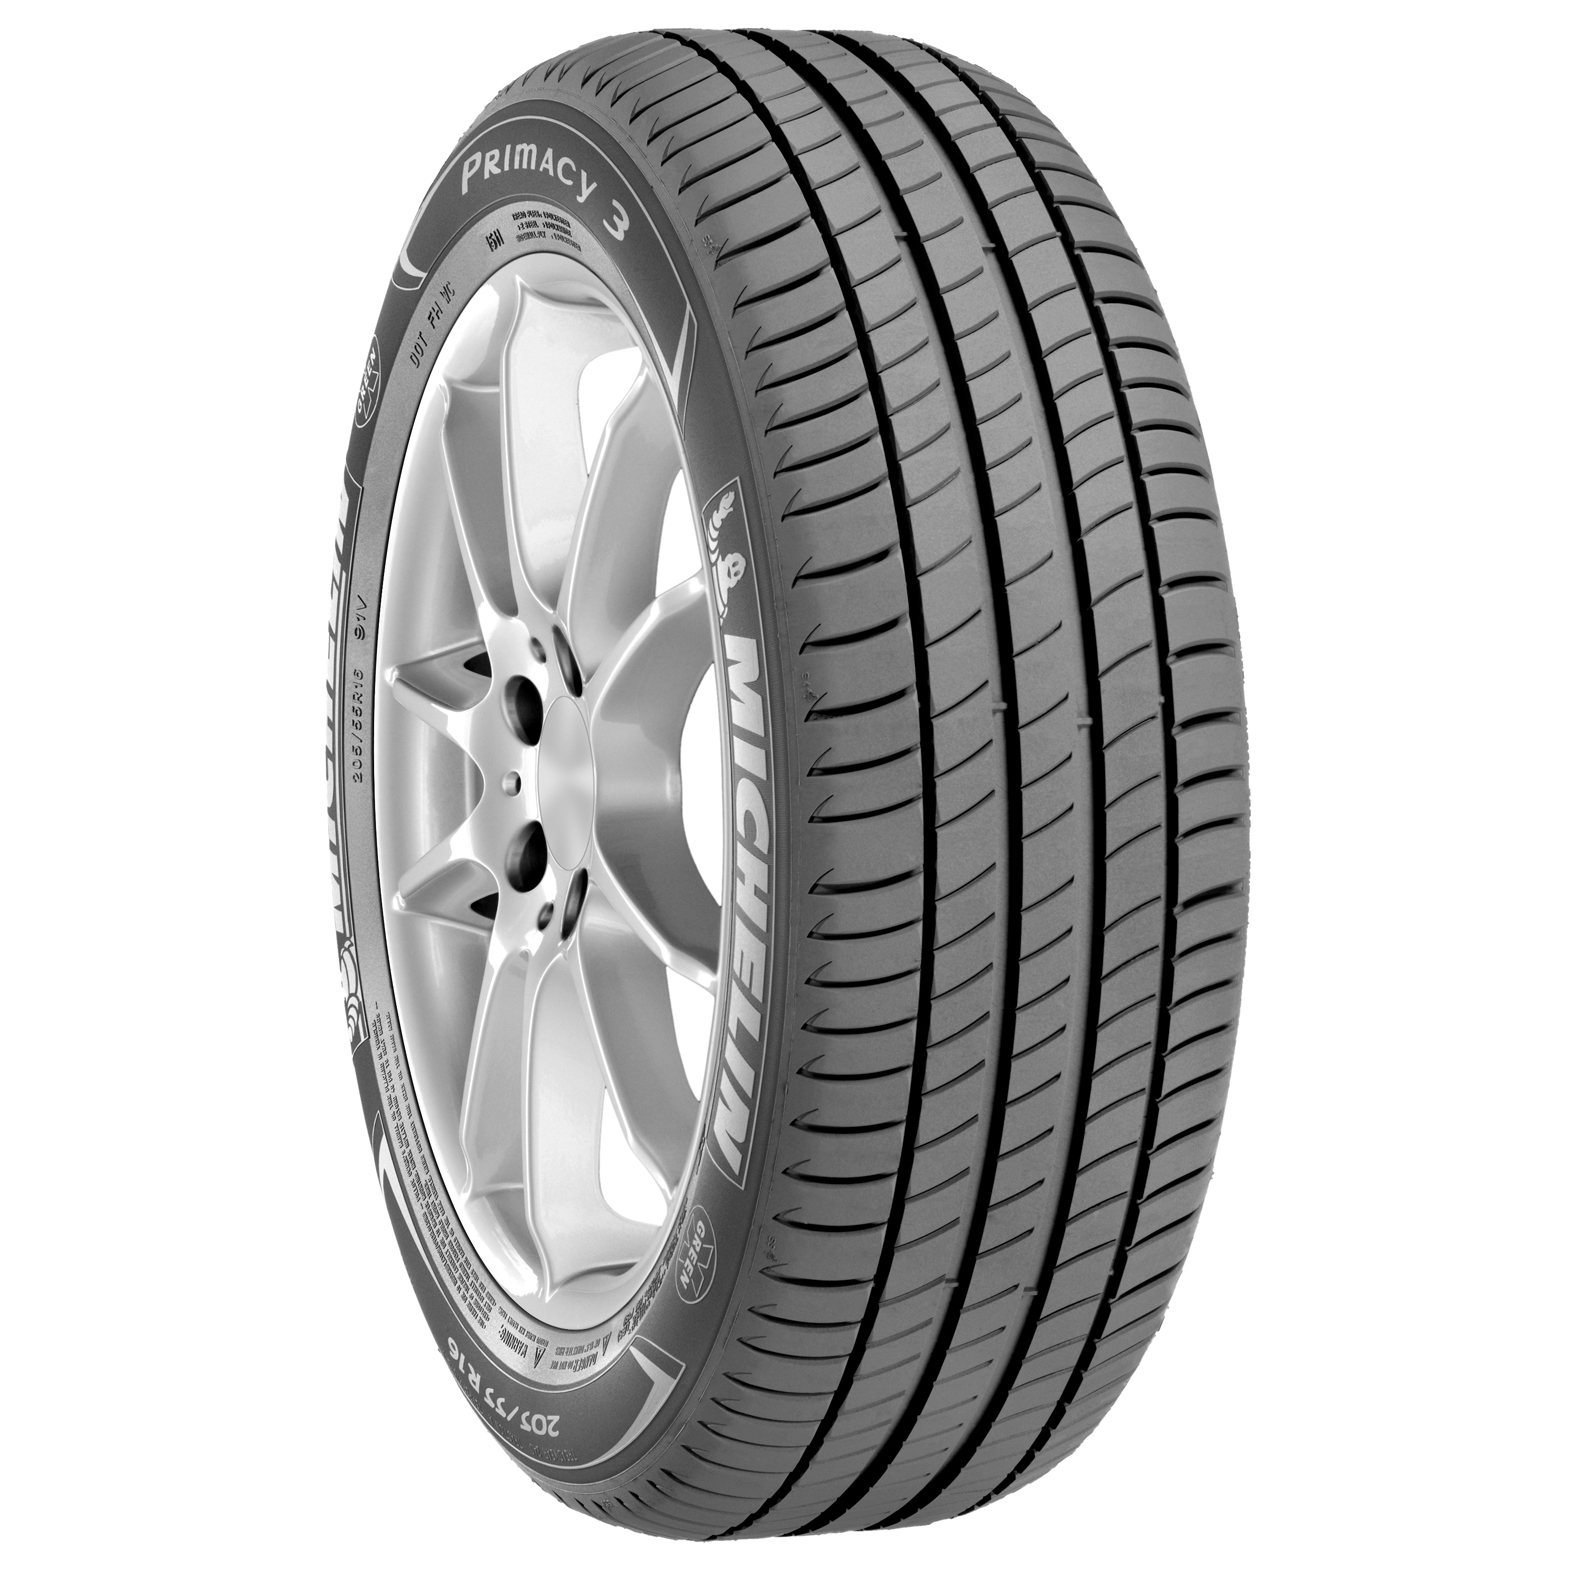 Michelin PRIMACY 3 tire - angle